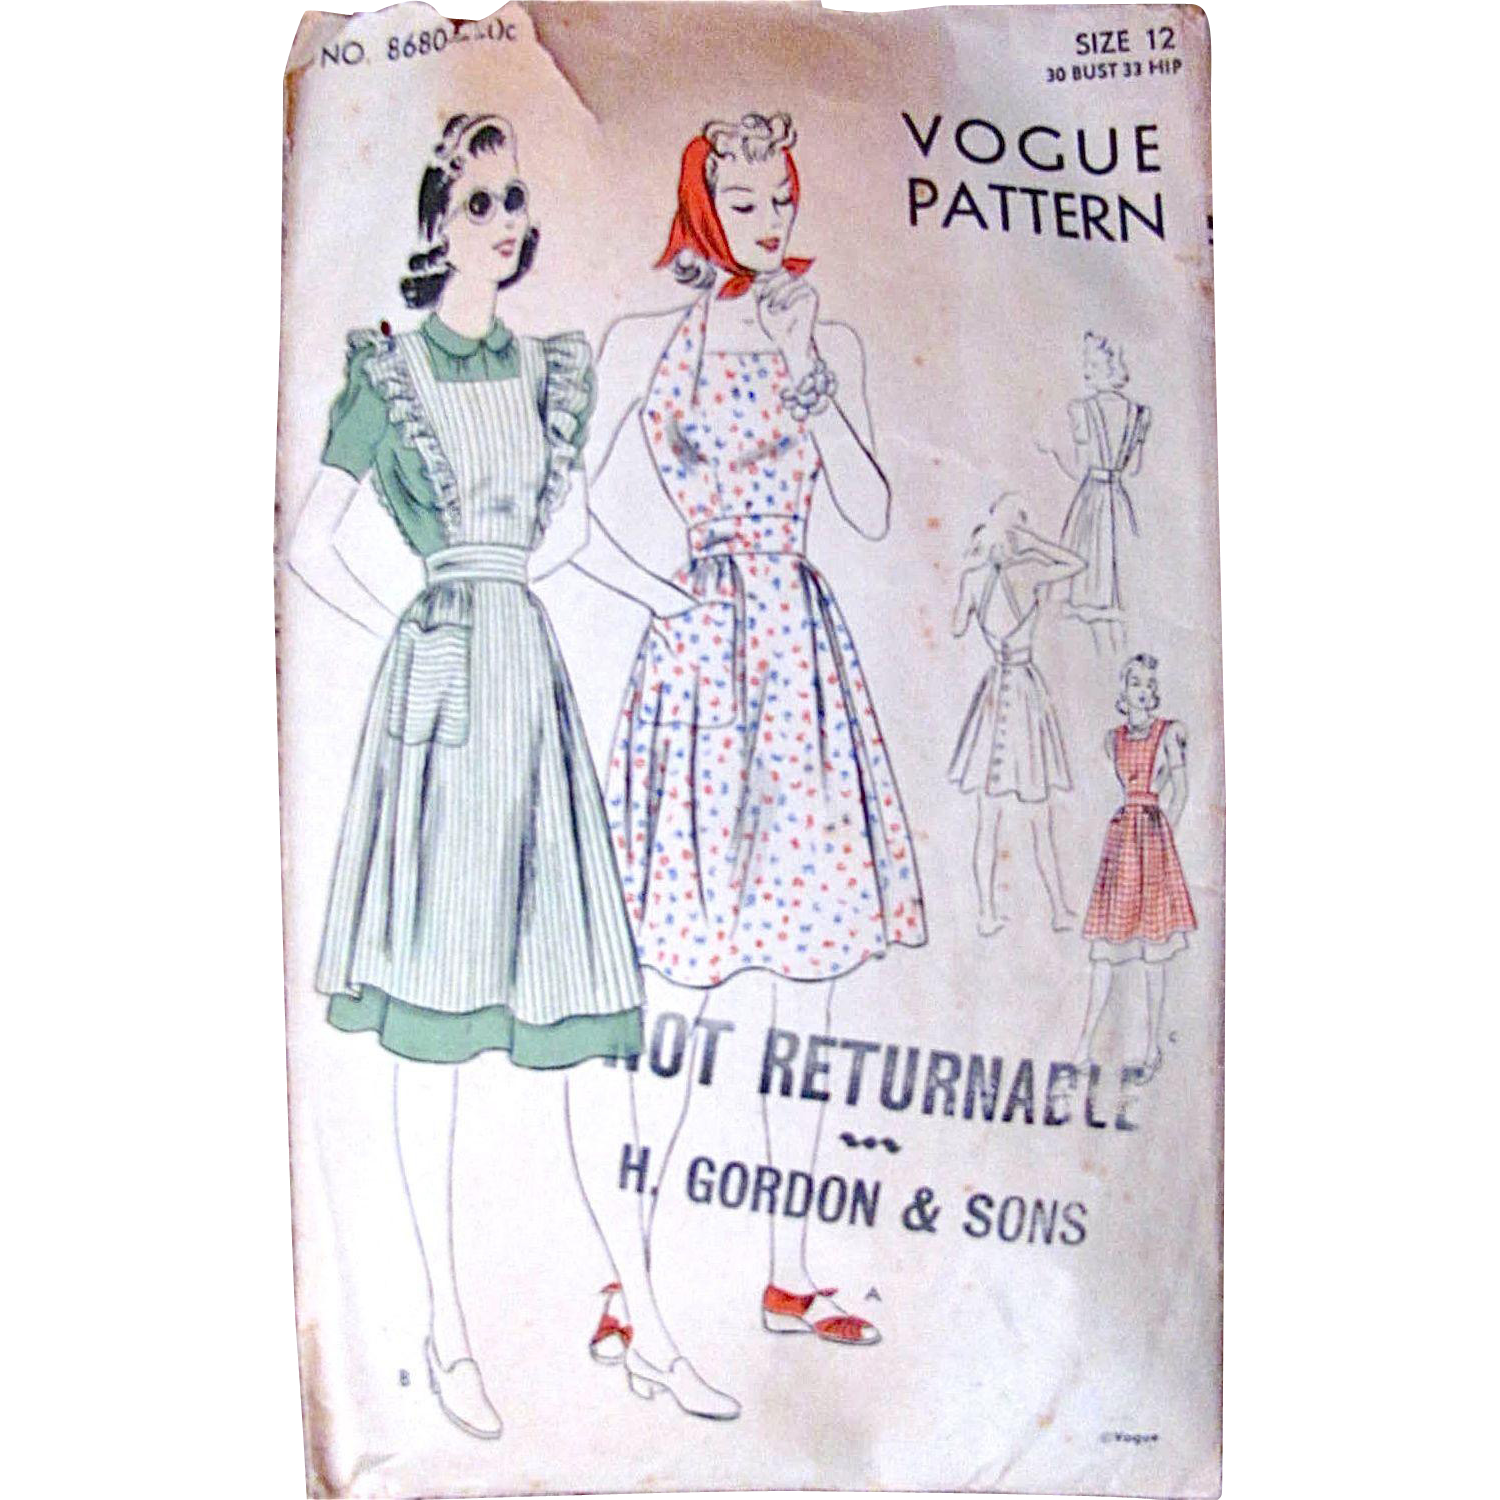 Play Dress or Pinafore, Vogue Pattern 8680, Misses Size 12, Bust 30, Complete, Vintage 1940s, Easy-To-Make